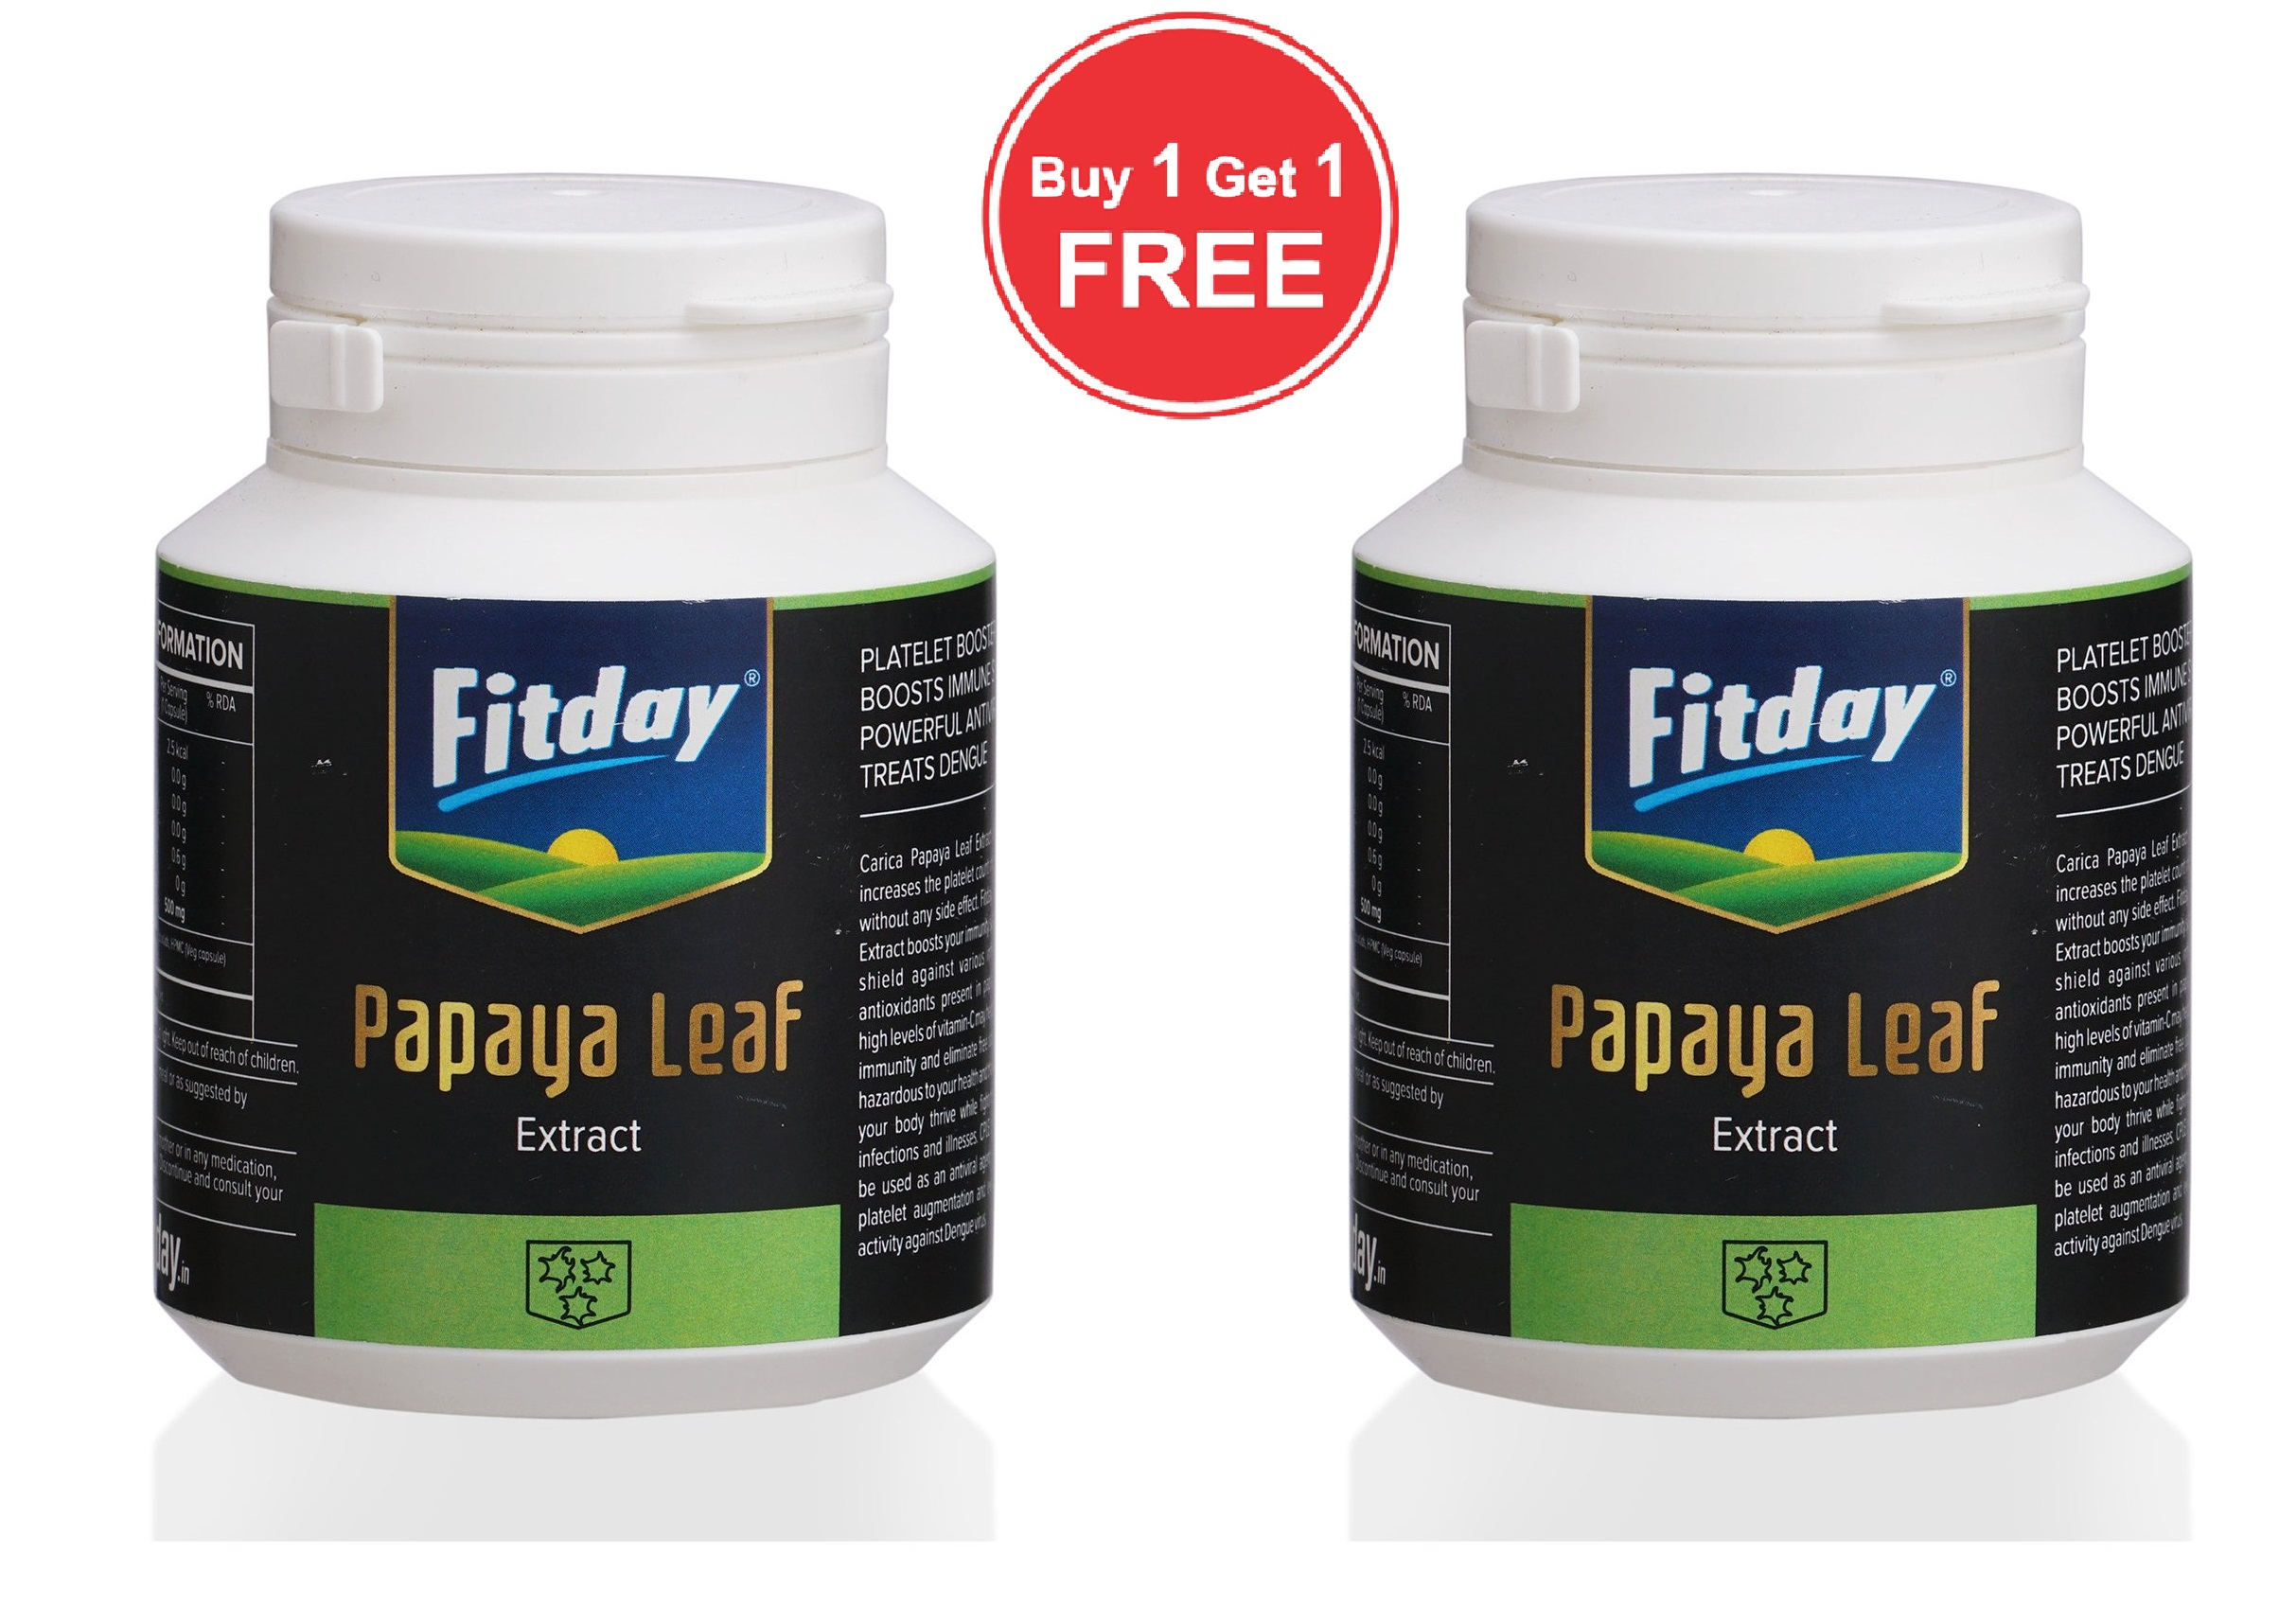 Fitday Papaya Leaf Extract 500mg  30 Capsules Buy 1 Get 1 Free